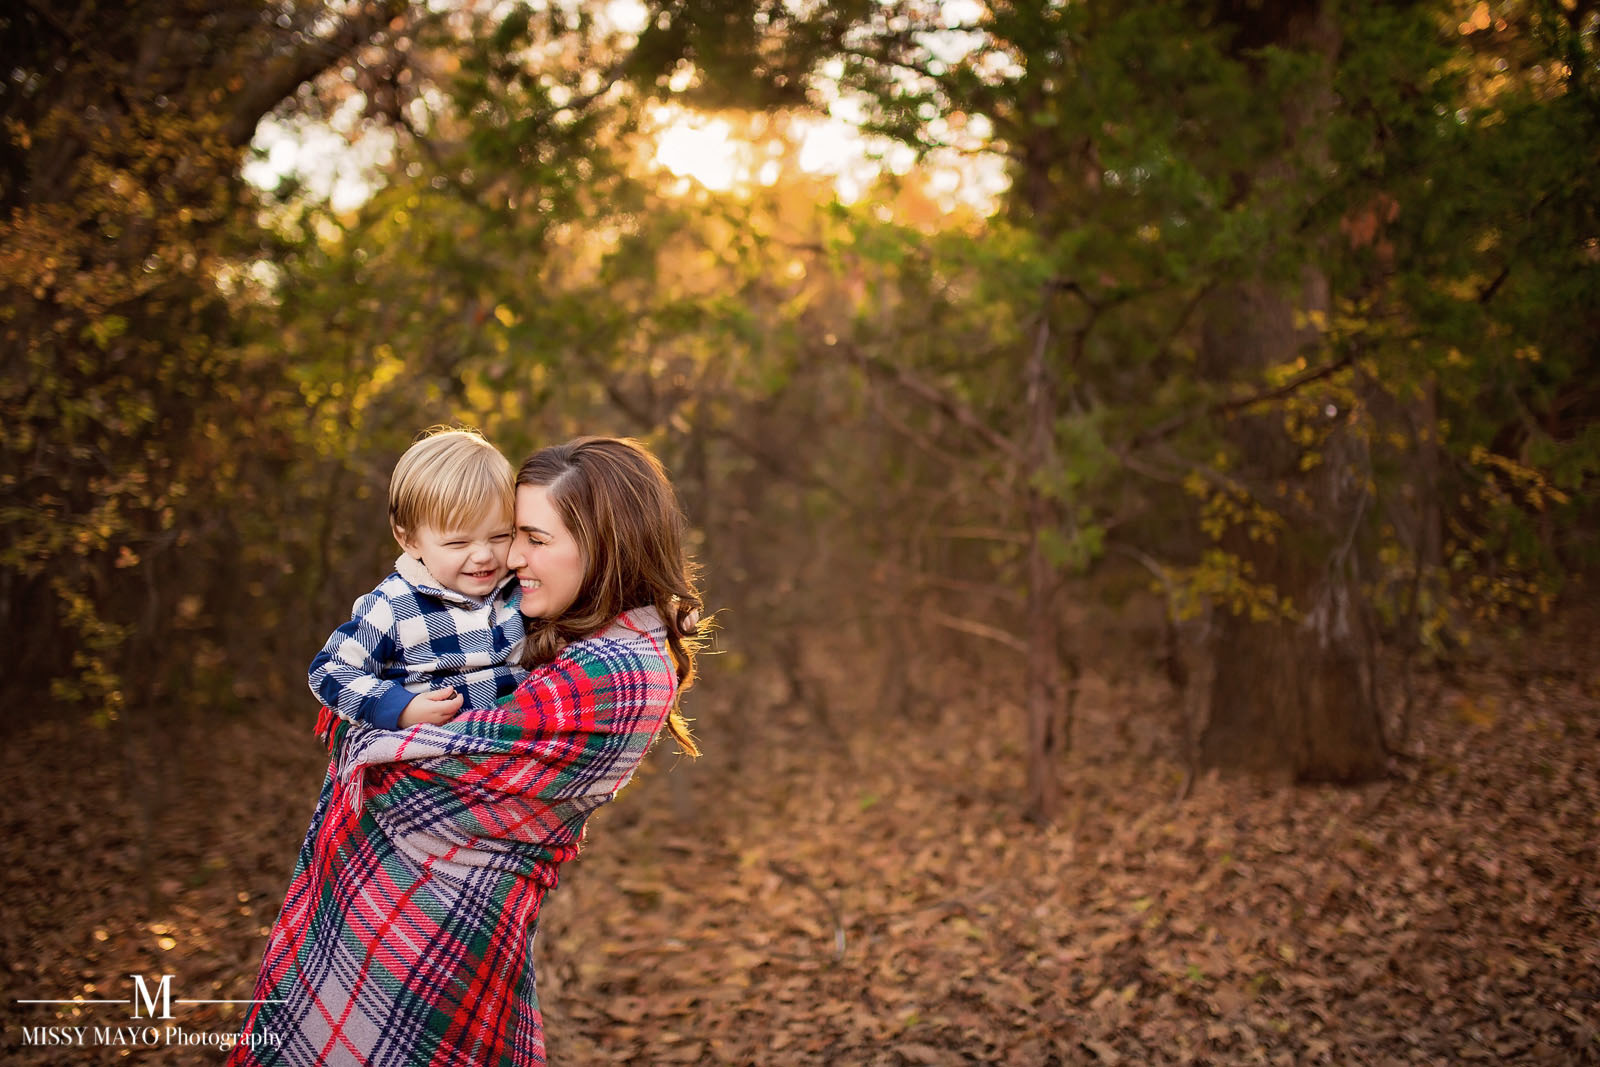 mom cuddling baby in a plaid blanket outdoors by Missy Mayo